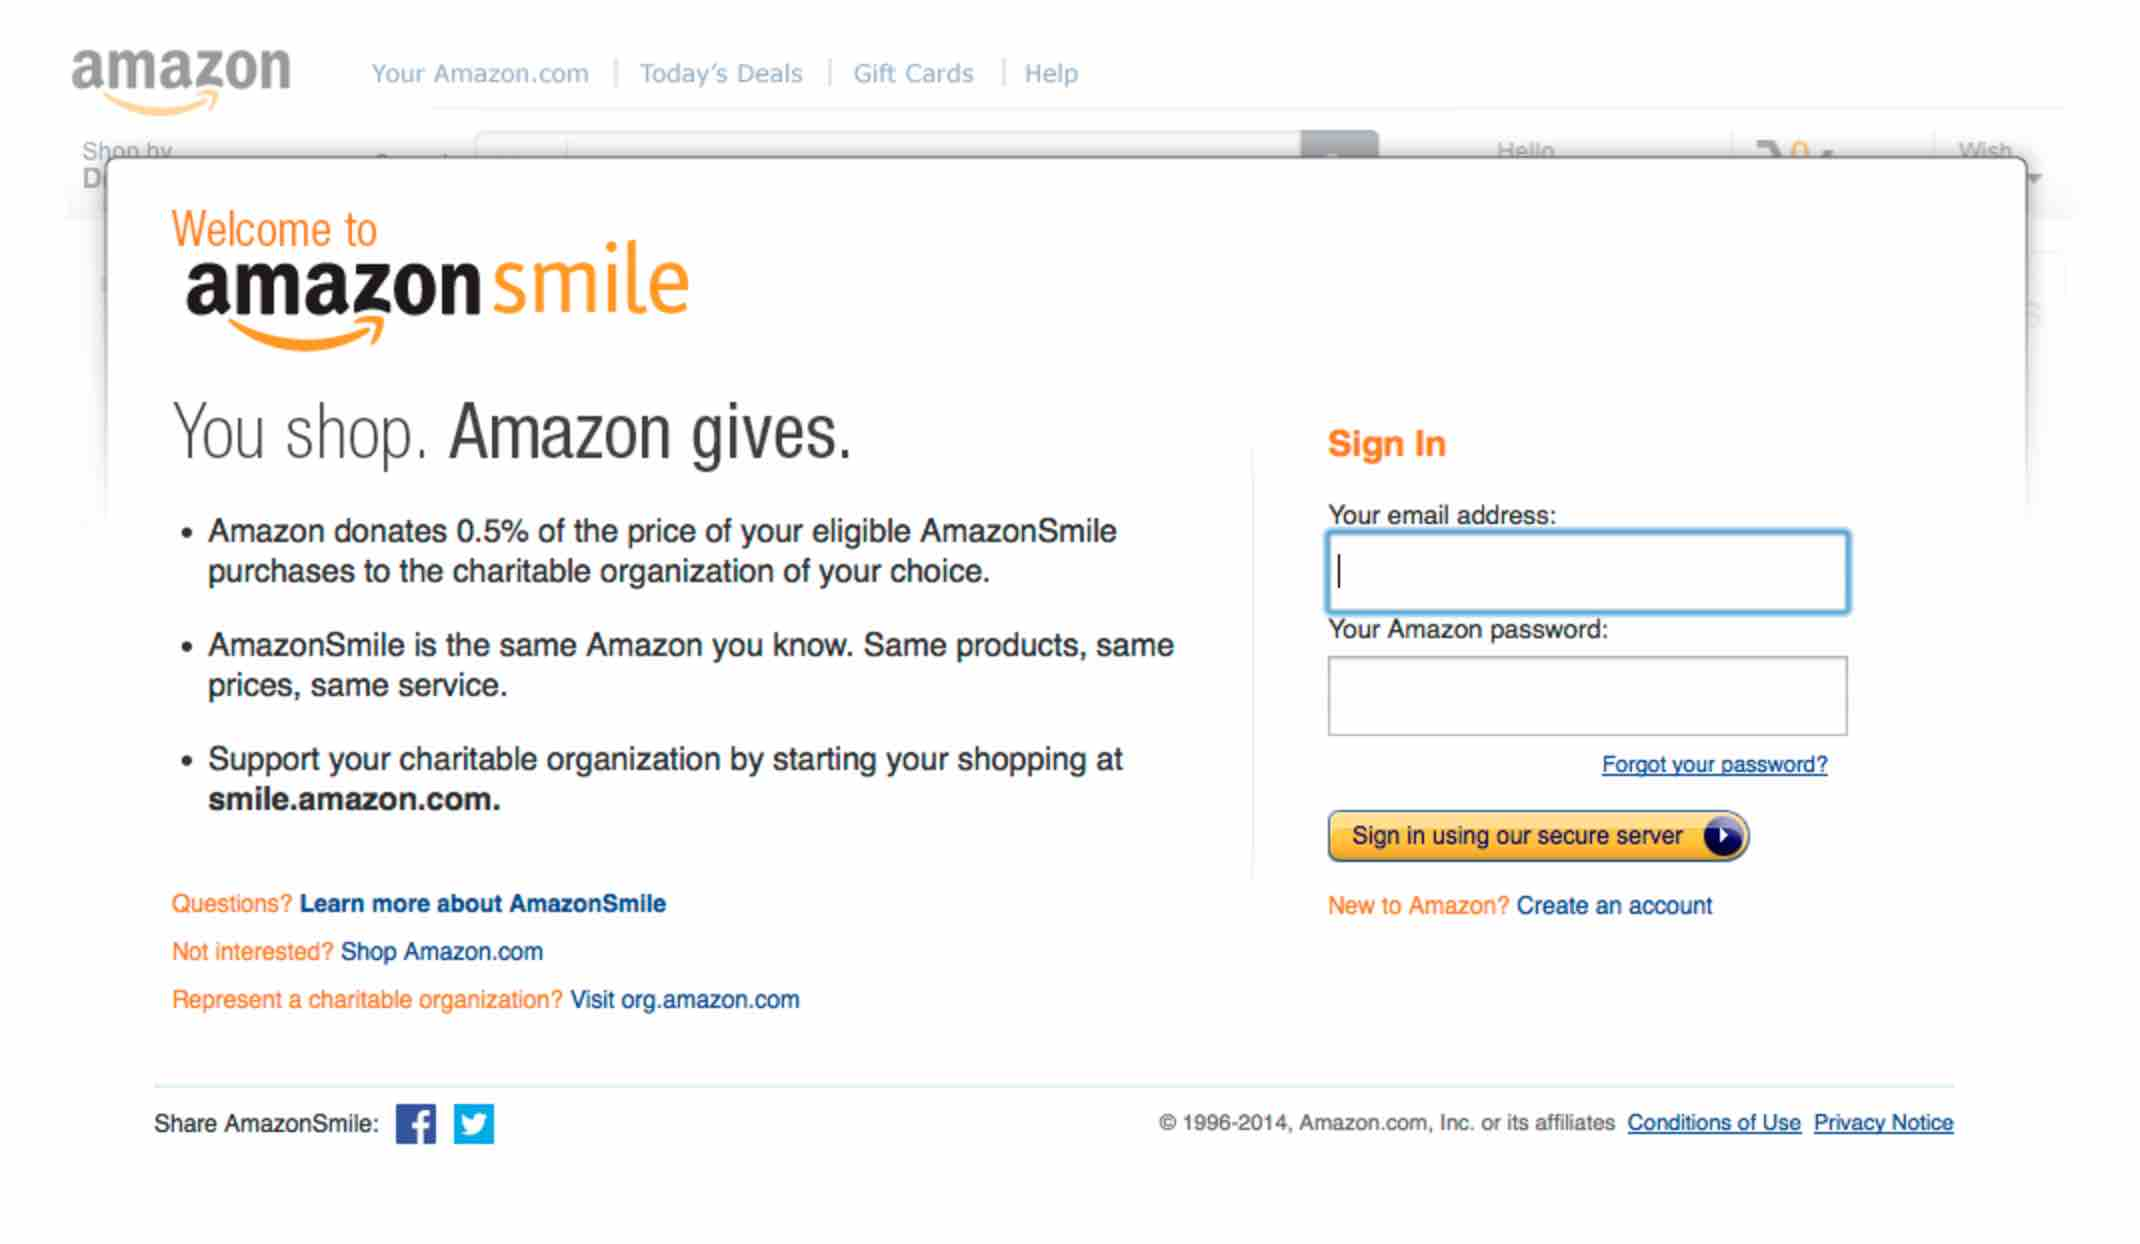 Amazon_Smile_Step_1.jpg